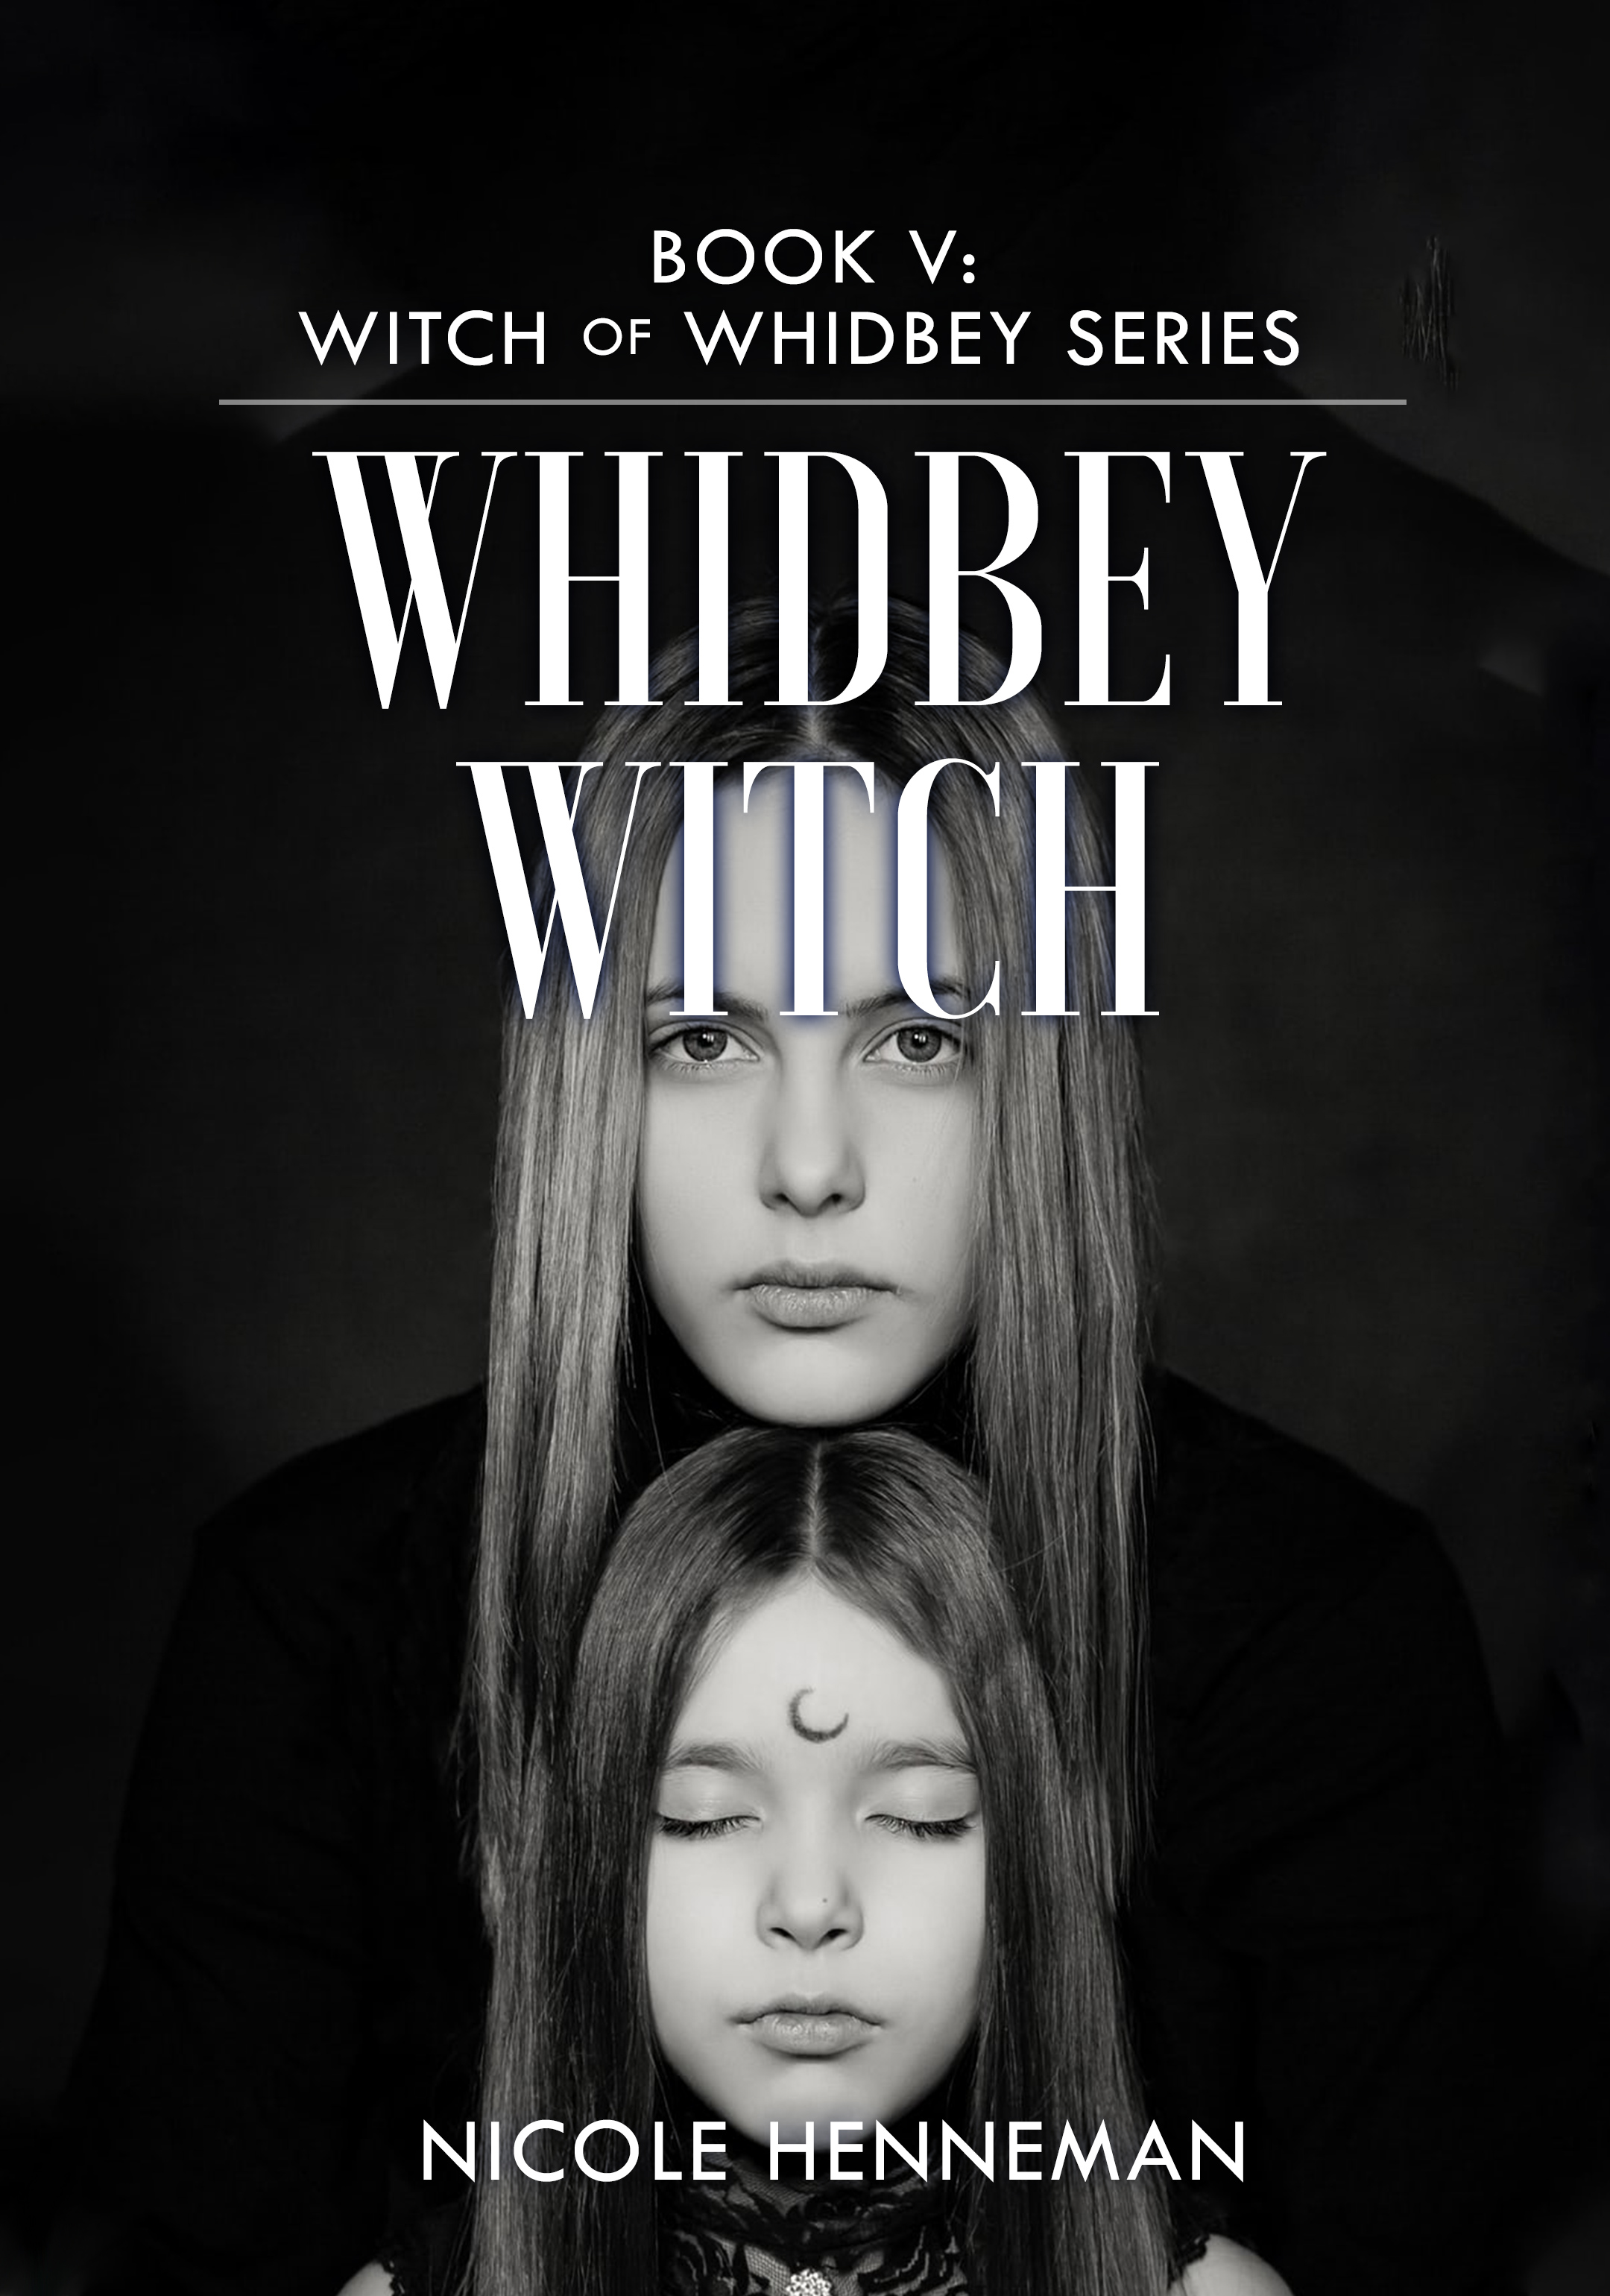 Whidbey Witch